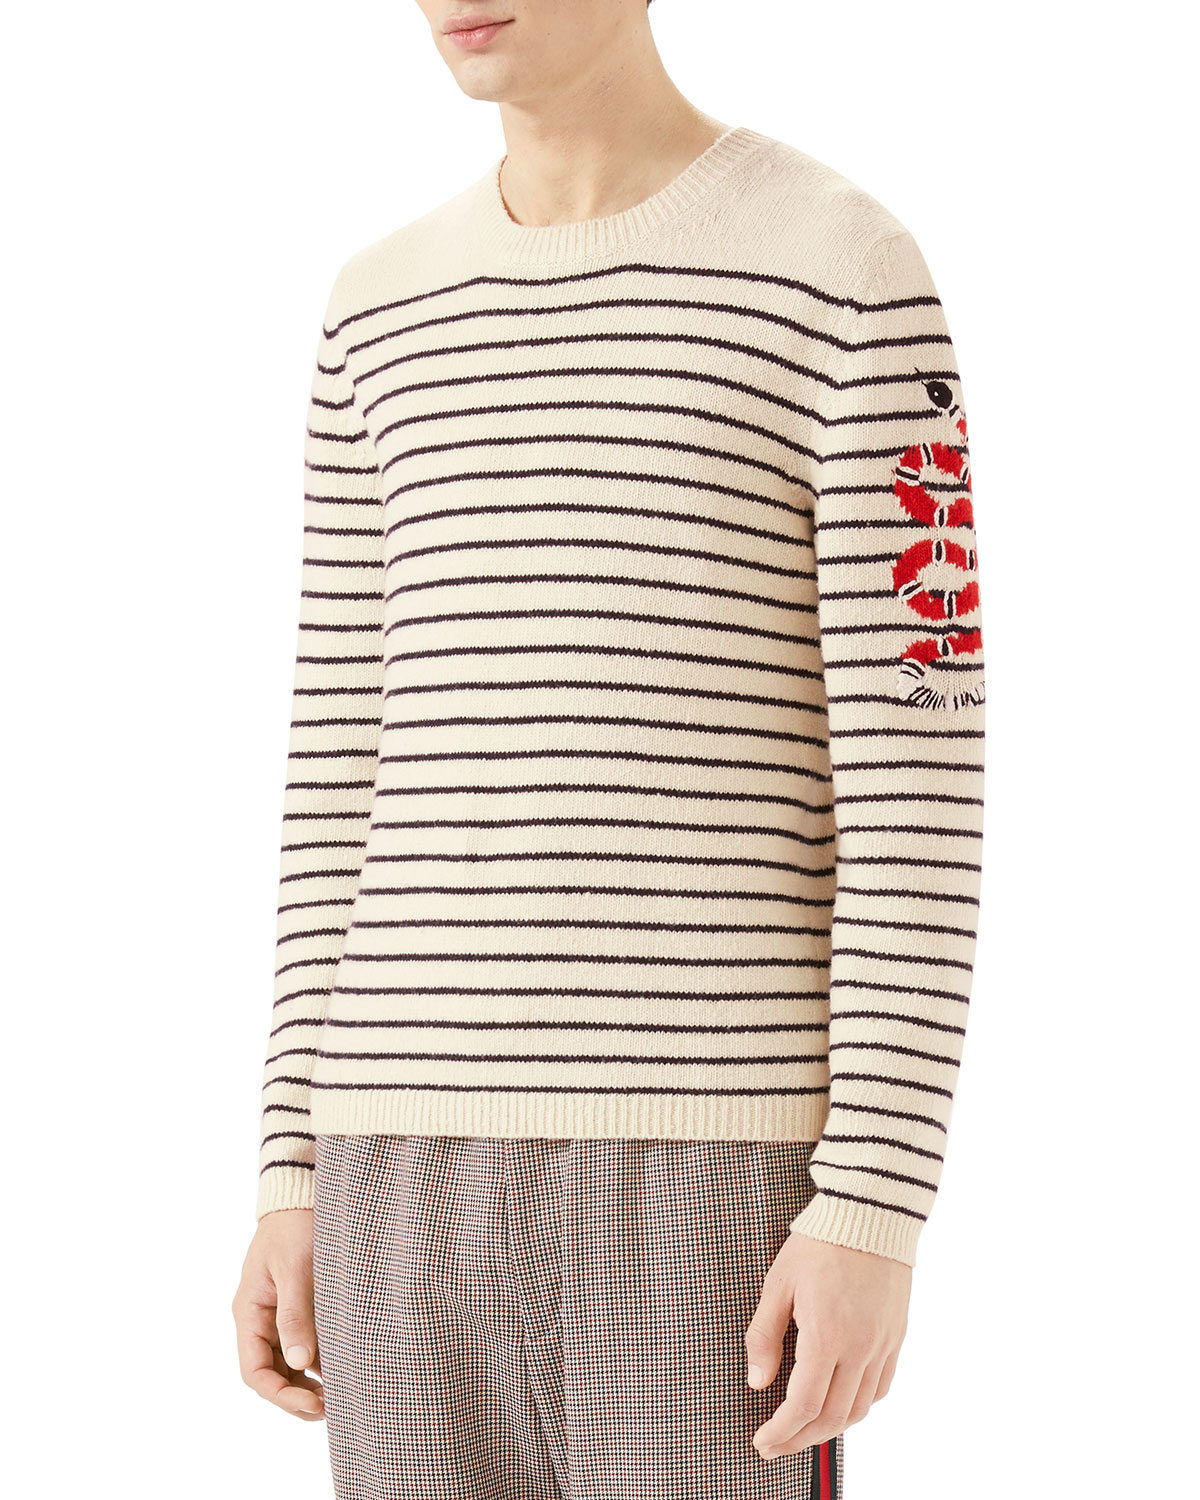 4a555e322a46d5 Gucci Men s Striped Wool Crewneck Sweater with Snake